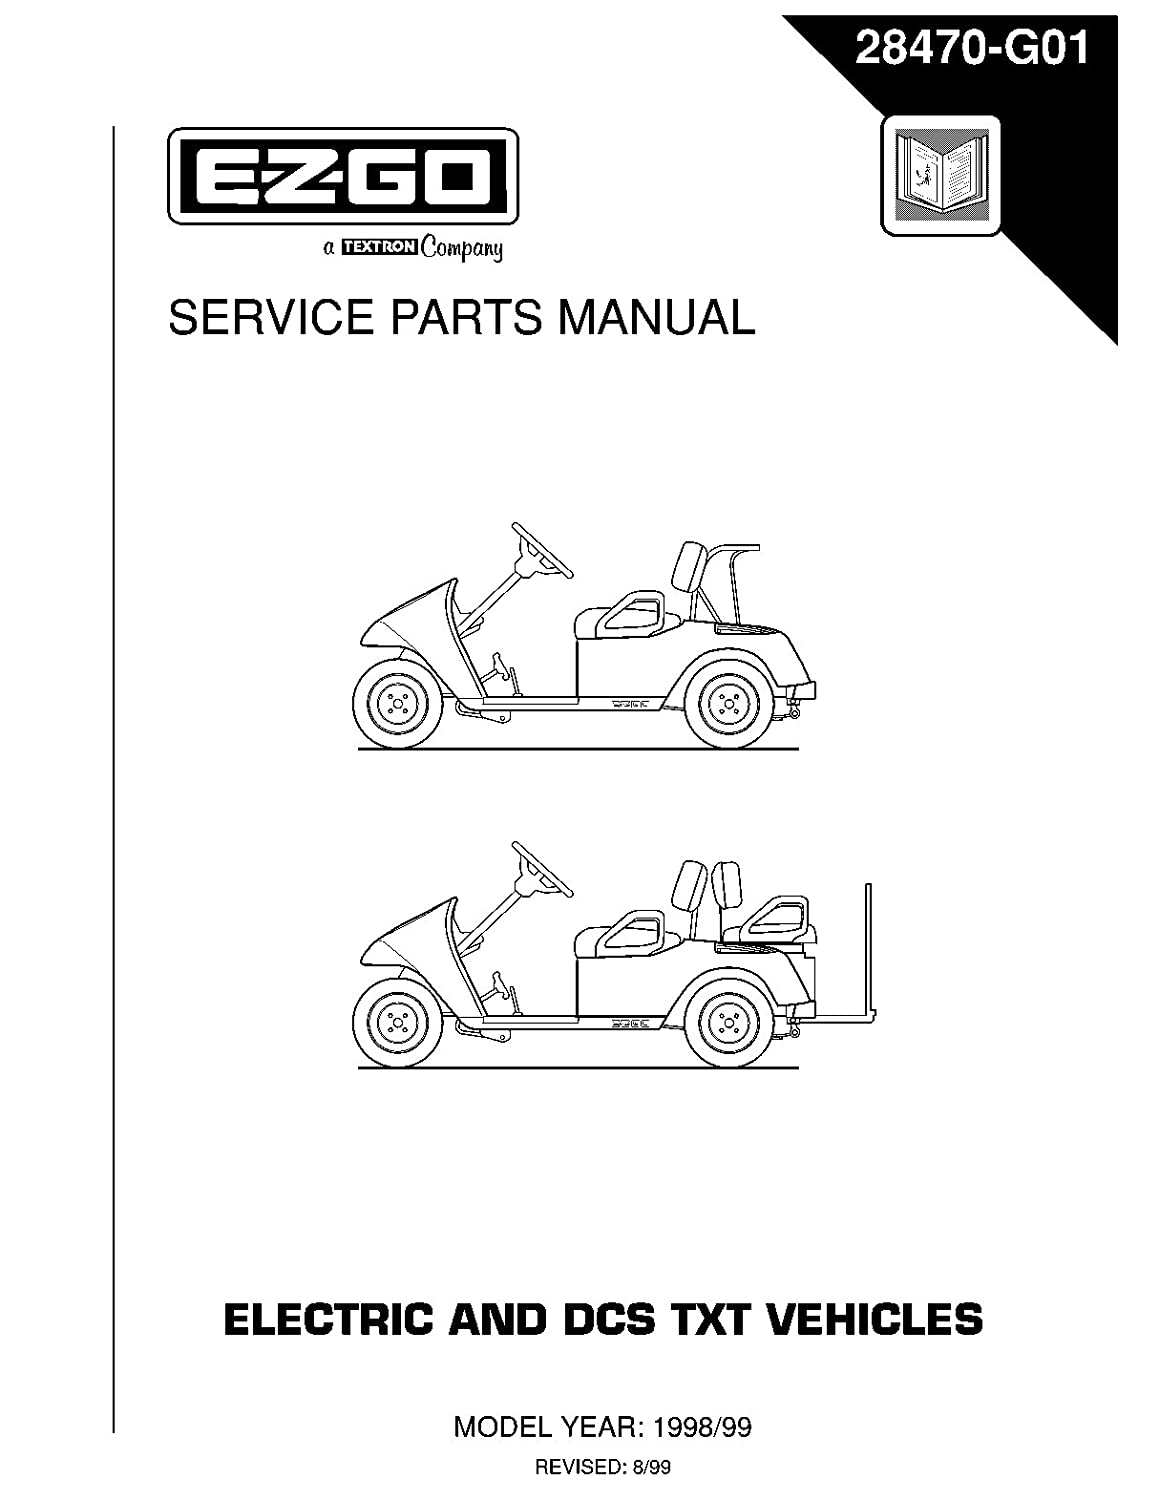 Amazon.com : EZGO 28470G01 1998-1999 Service Parts Manual for TXT Electric  Golf Vehicles : Garden & Outdoor